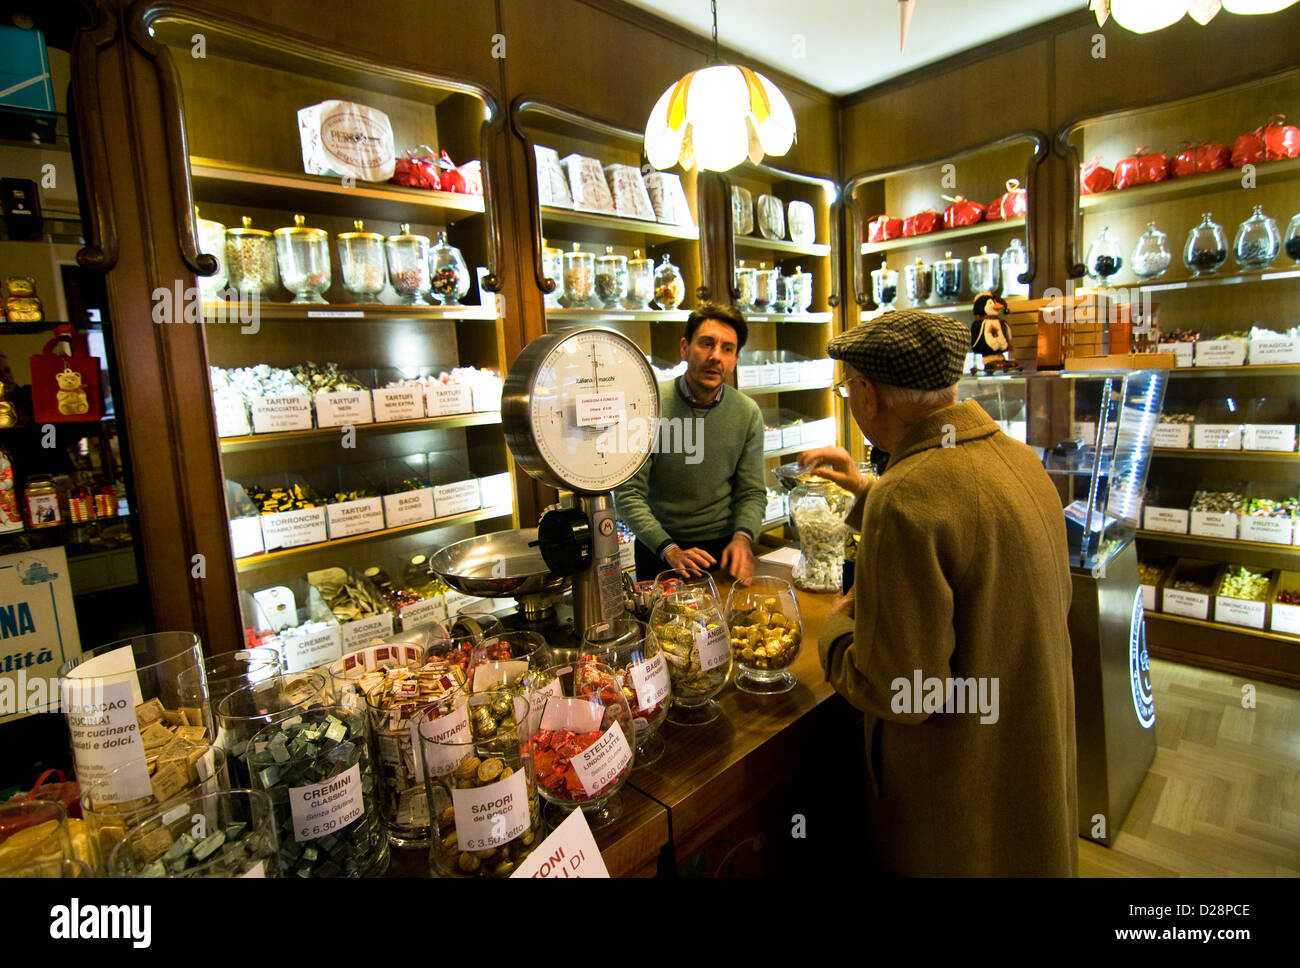 Bottega Delle Delizie - The most popular Chocolate shop in the old town of Bra, Piedmont, Italy. - Stock Image